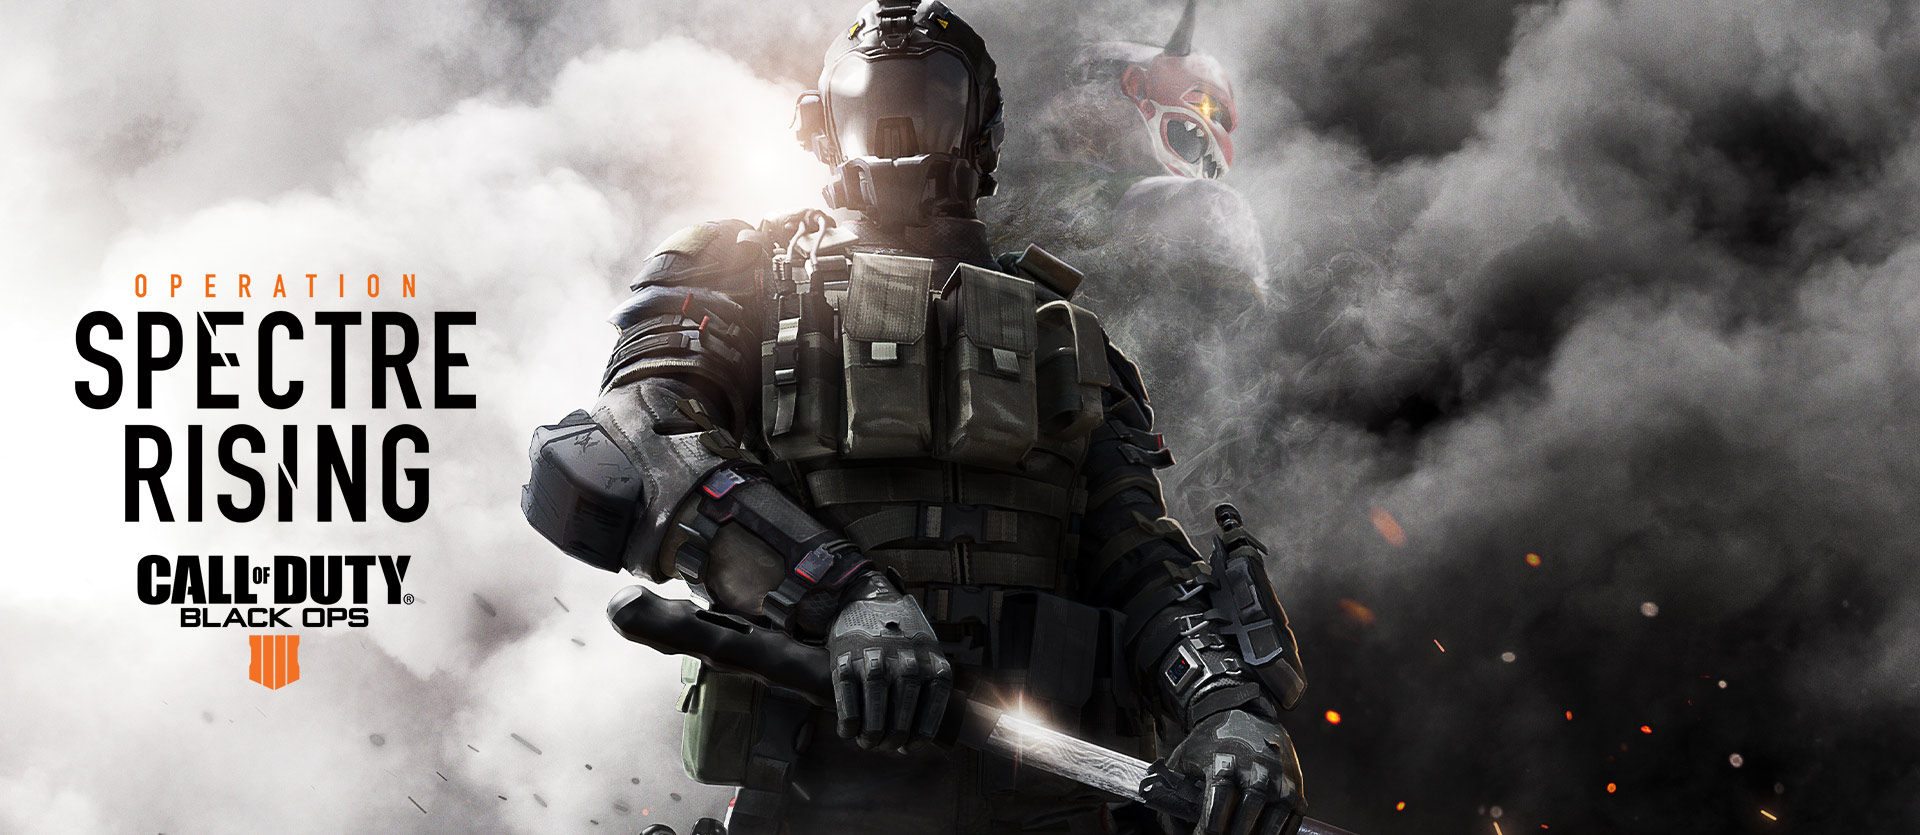 Operation Spectre Rising, Call of Duty: Black Ops 4 logo, character in full black military gear with a sword in white and grey smoke and a smokey figure with a mask behind him